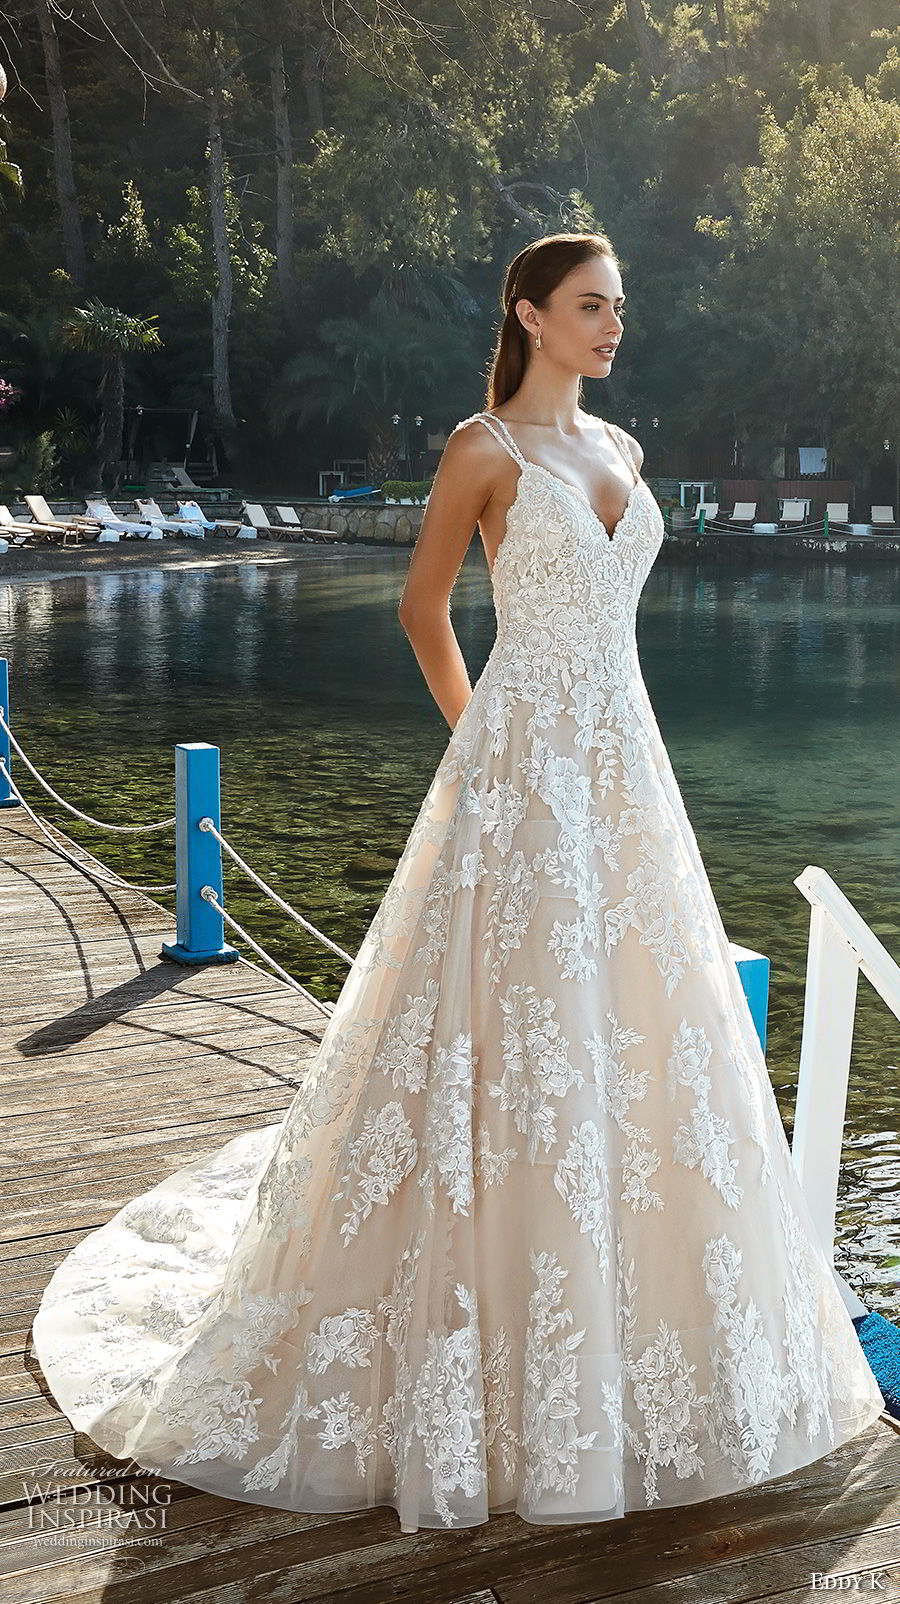 eddy k 2018 bridal double strap sweetheart neckline full embellishment romantic a  line wedding dress open back chapel train (16) mv